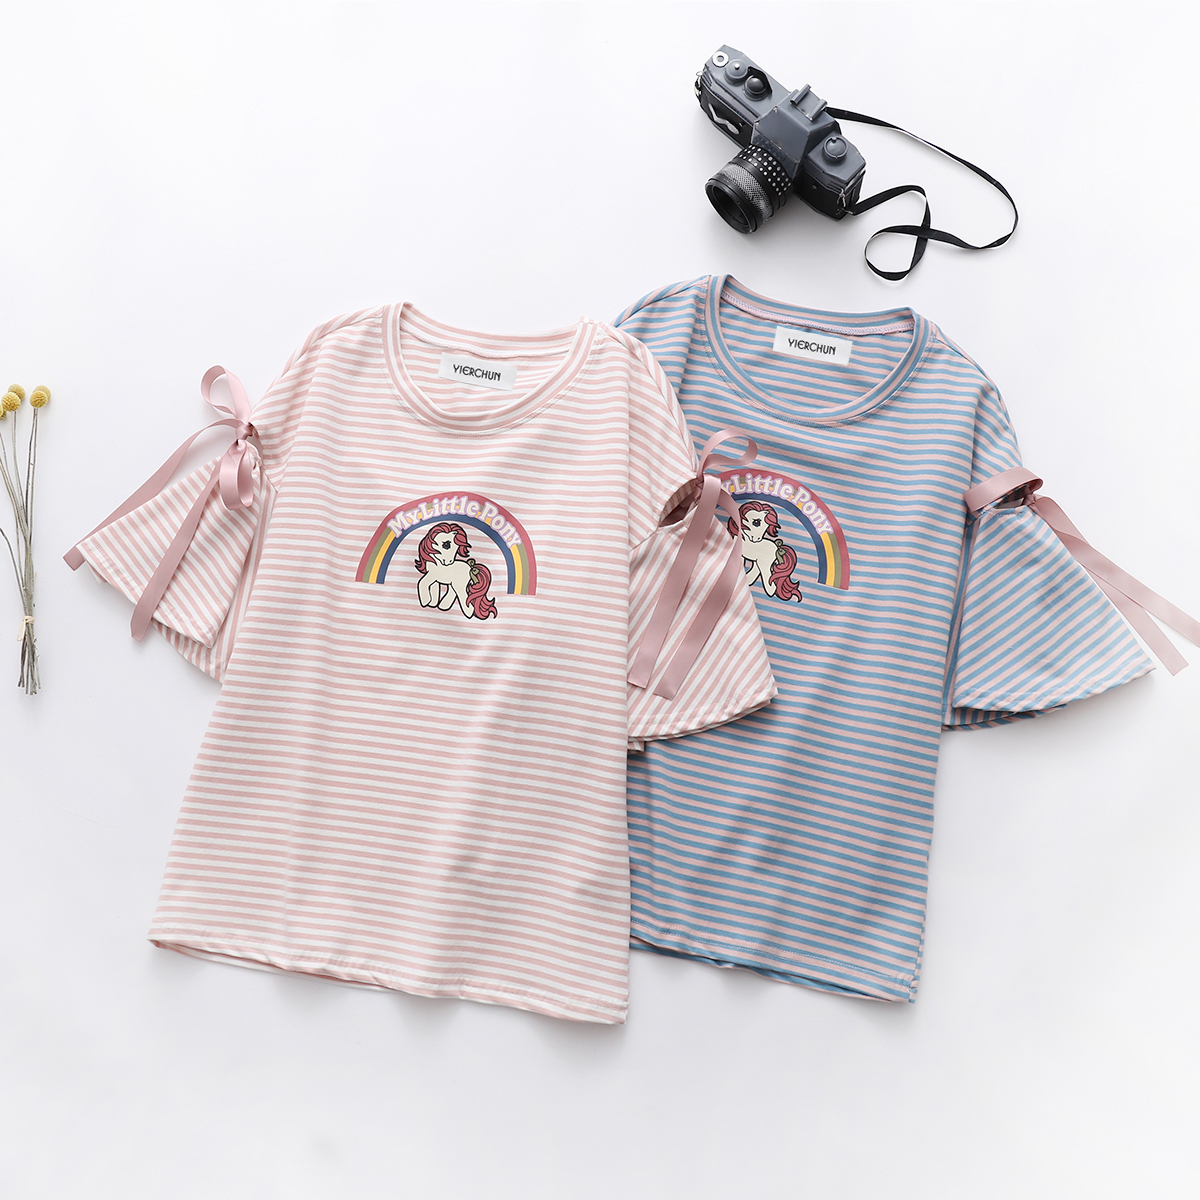 FREE DHL SHIPPING My Little Pony T-shirt